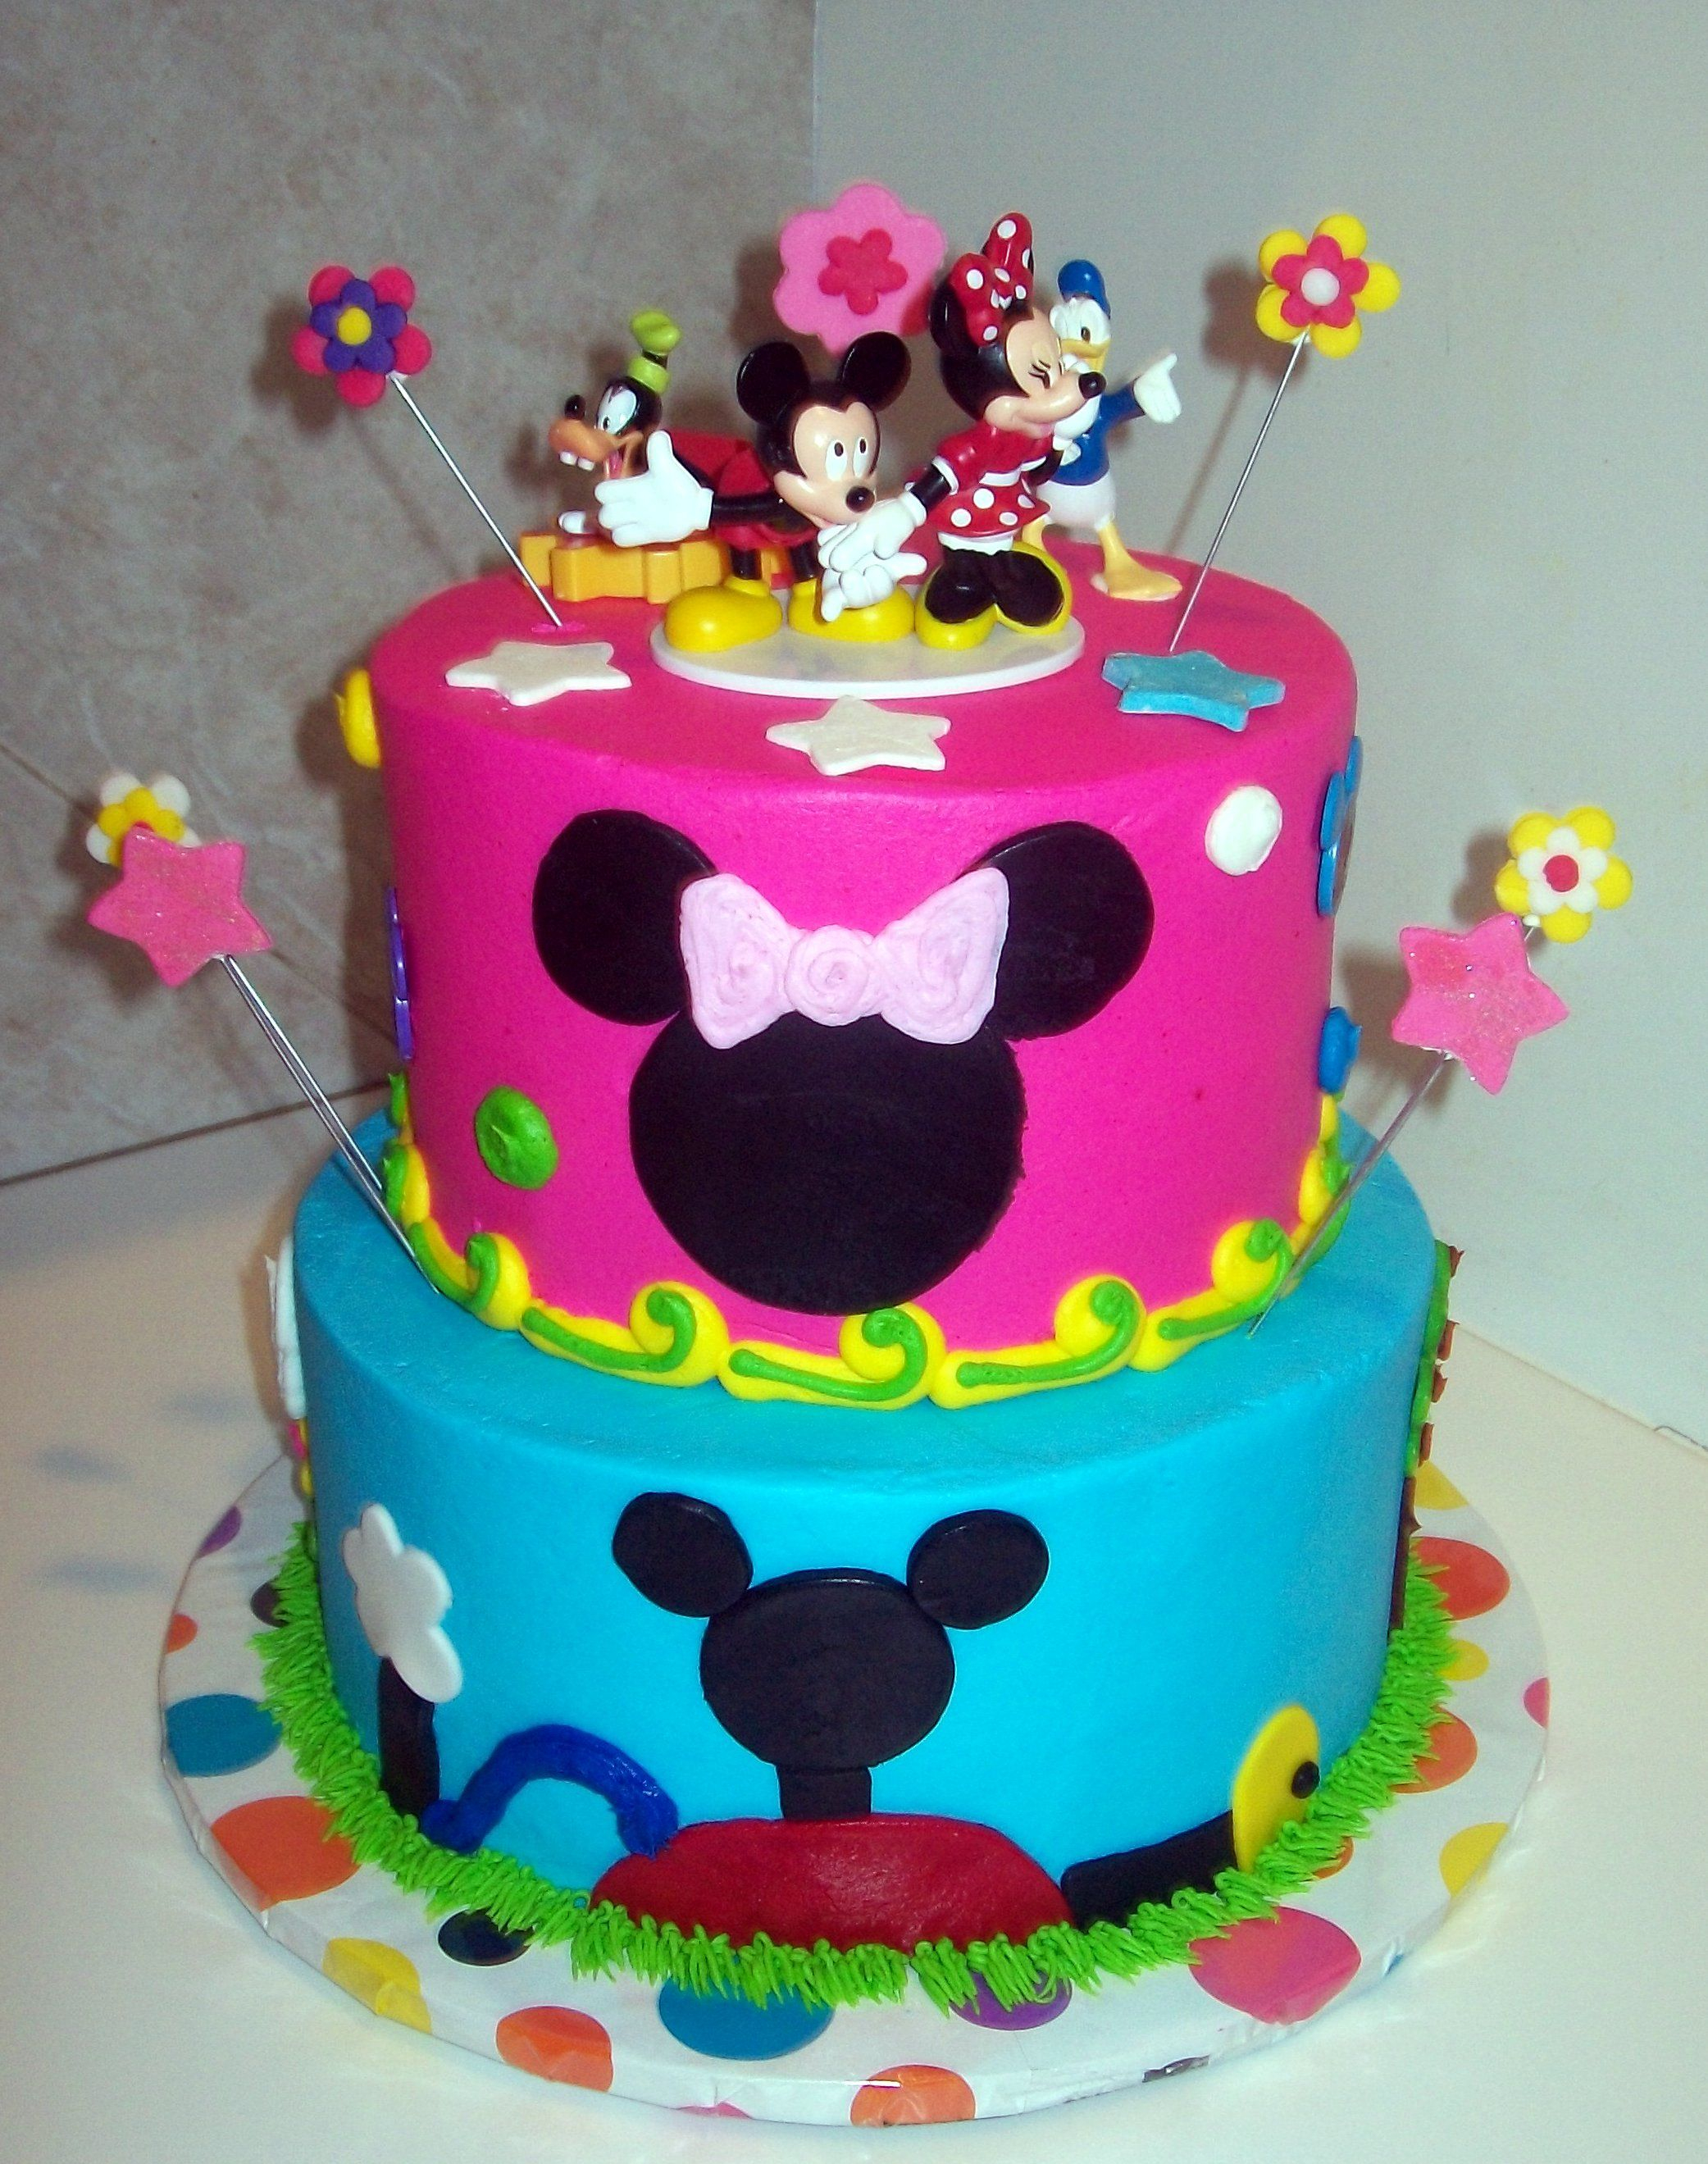 Mickey Mouse Clubhouse Birthday Cakes Image Detail For Mickey Mouse Clubhouse For A Girl Mommy File